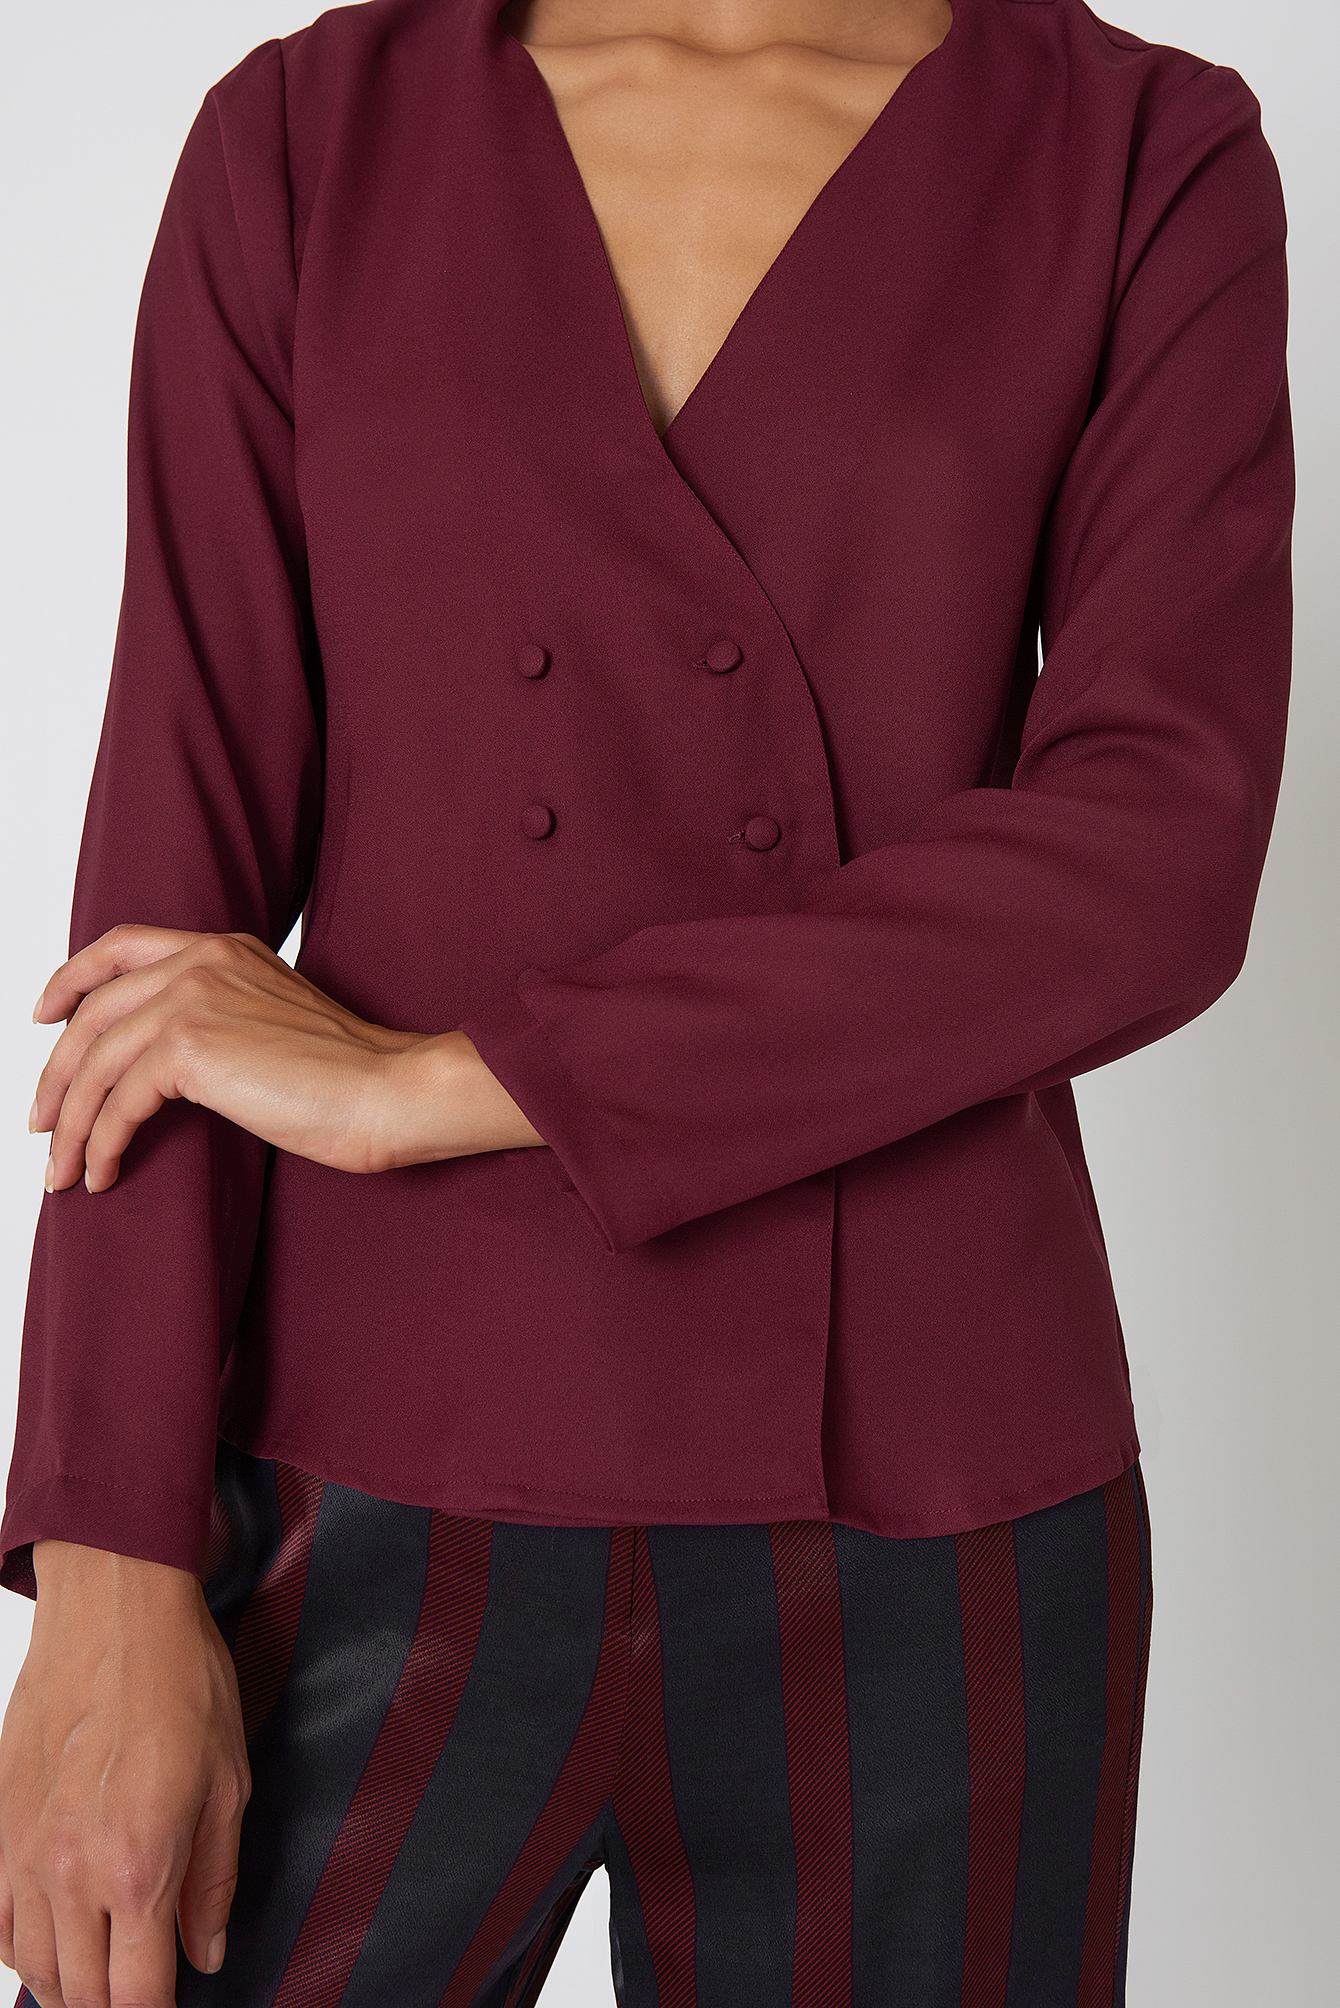 Plum Linn Blouse Jacket